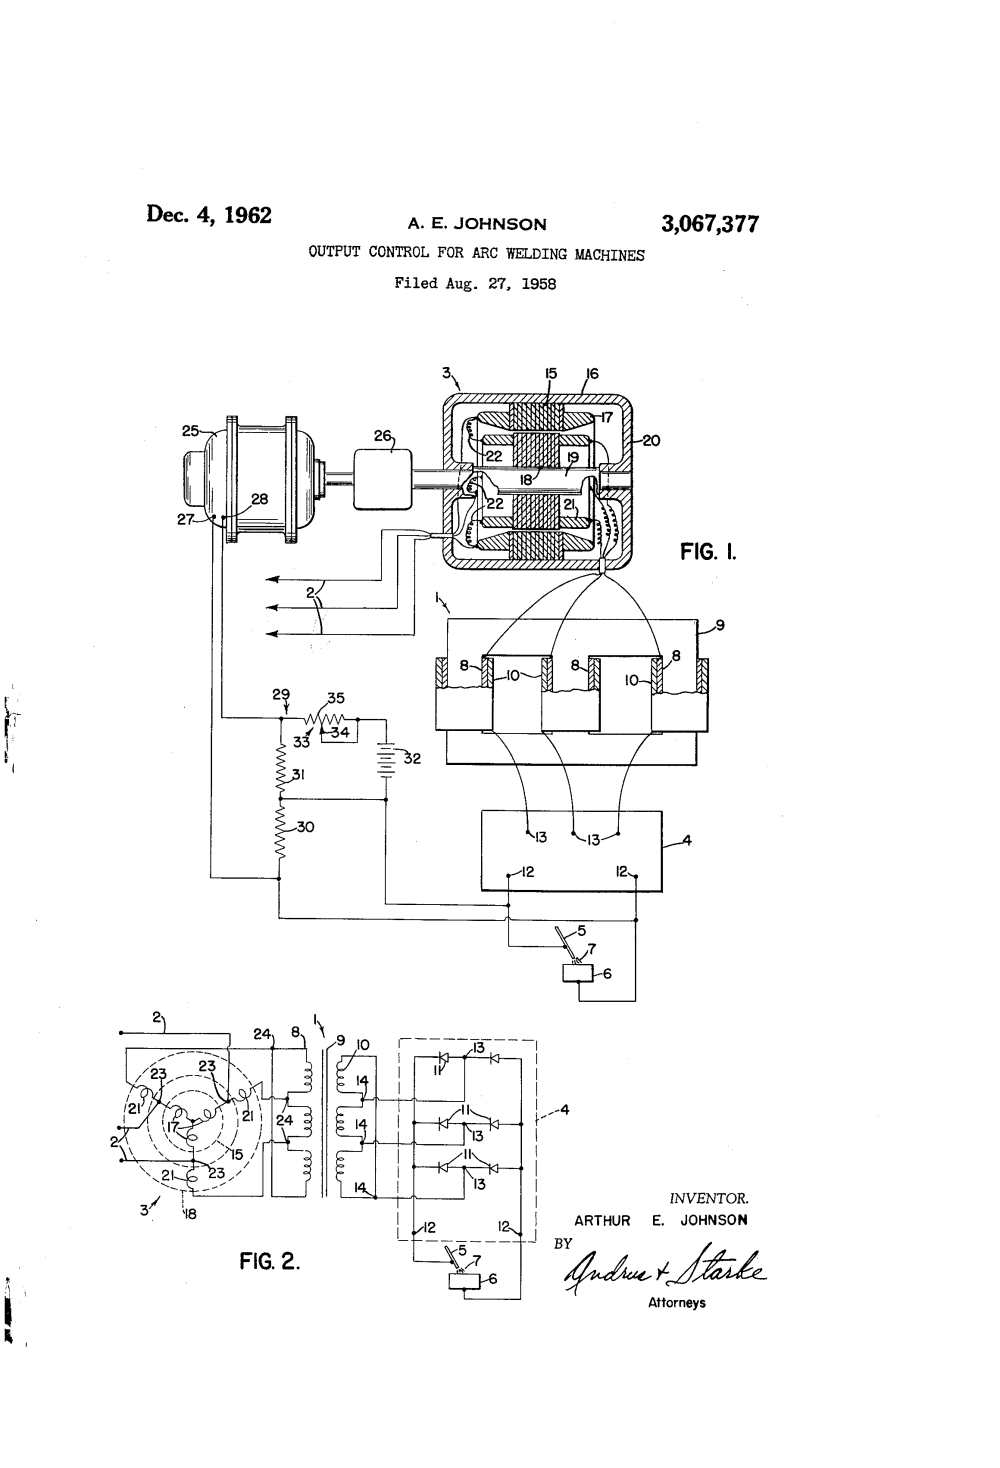 medium resolution of patent us3067377 output control for arc welding machines google patents